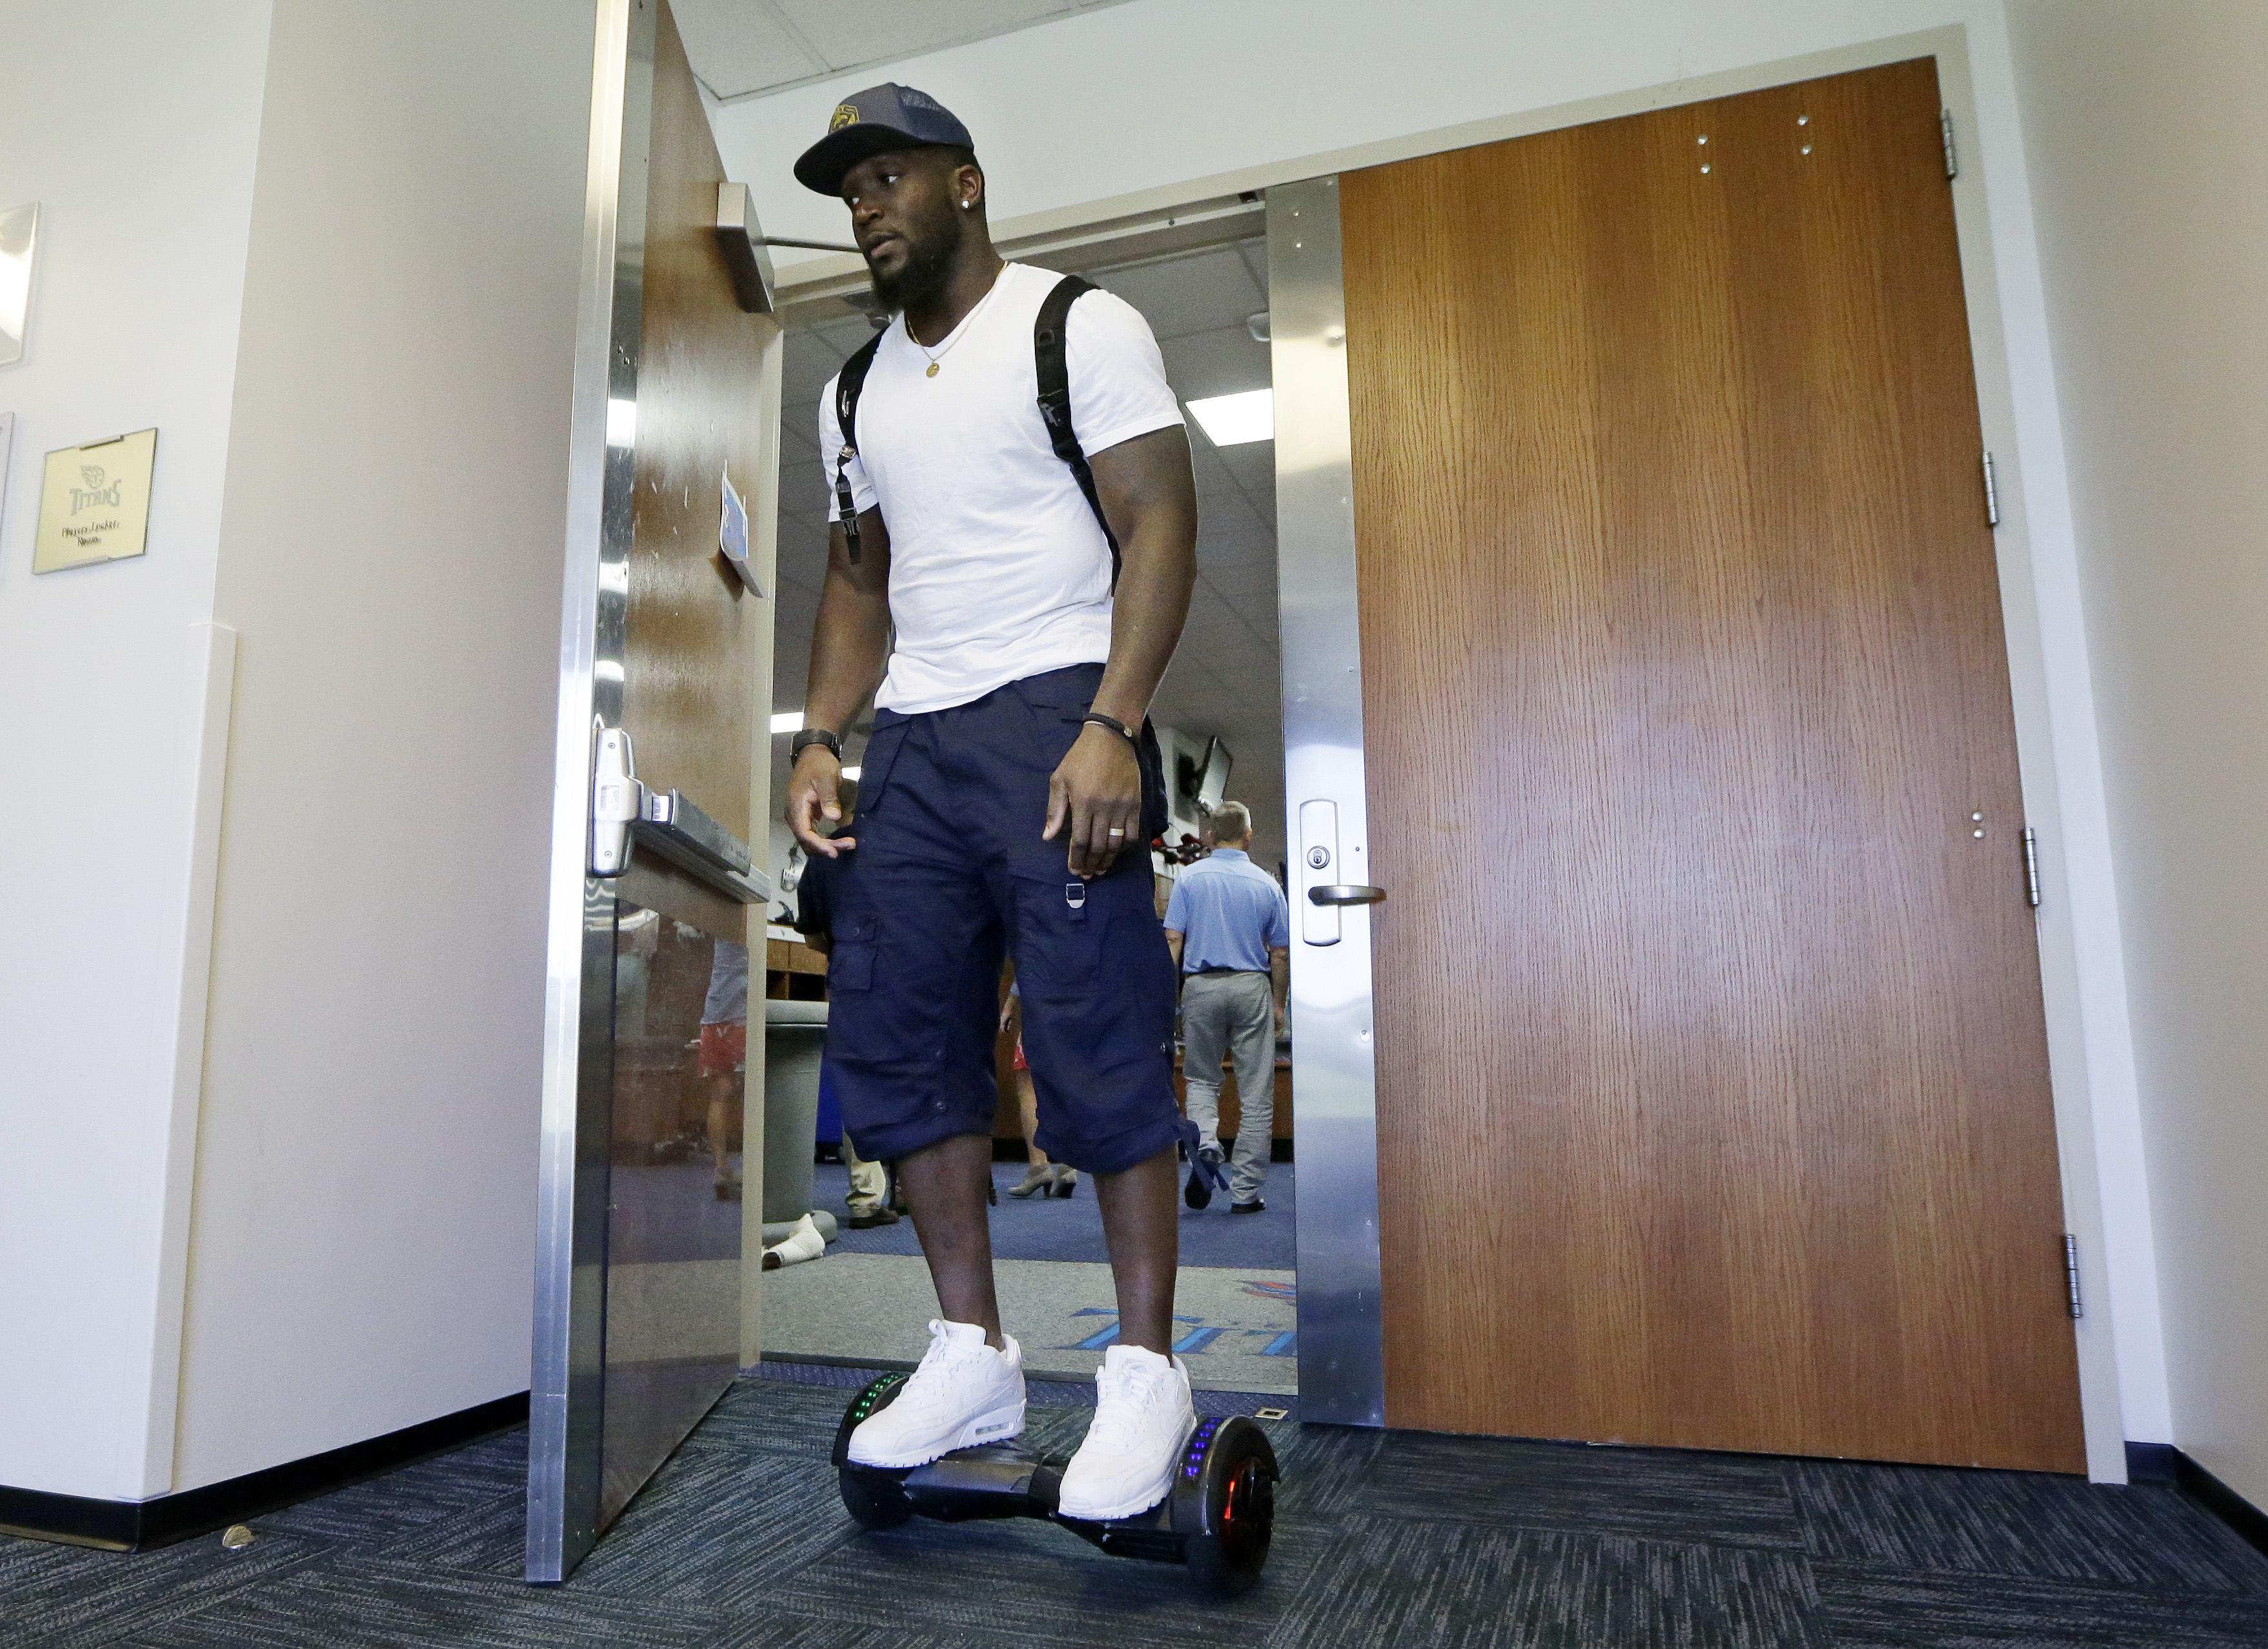 In this Wednesday, Sept. 23, 2015, photo, Tennessee Titans linebacker Brian Orakpo leaves the locker room on a motorized skateboard in Nashville, Tenn. Many of the Titans players use the devices to travel through the team's facility. (AP Photo/Mark Humphr